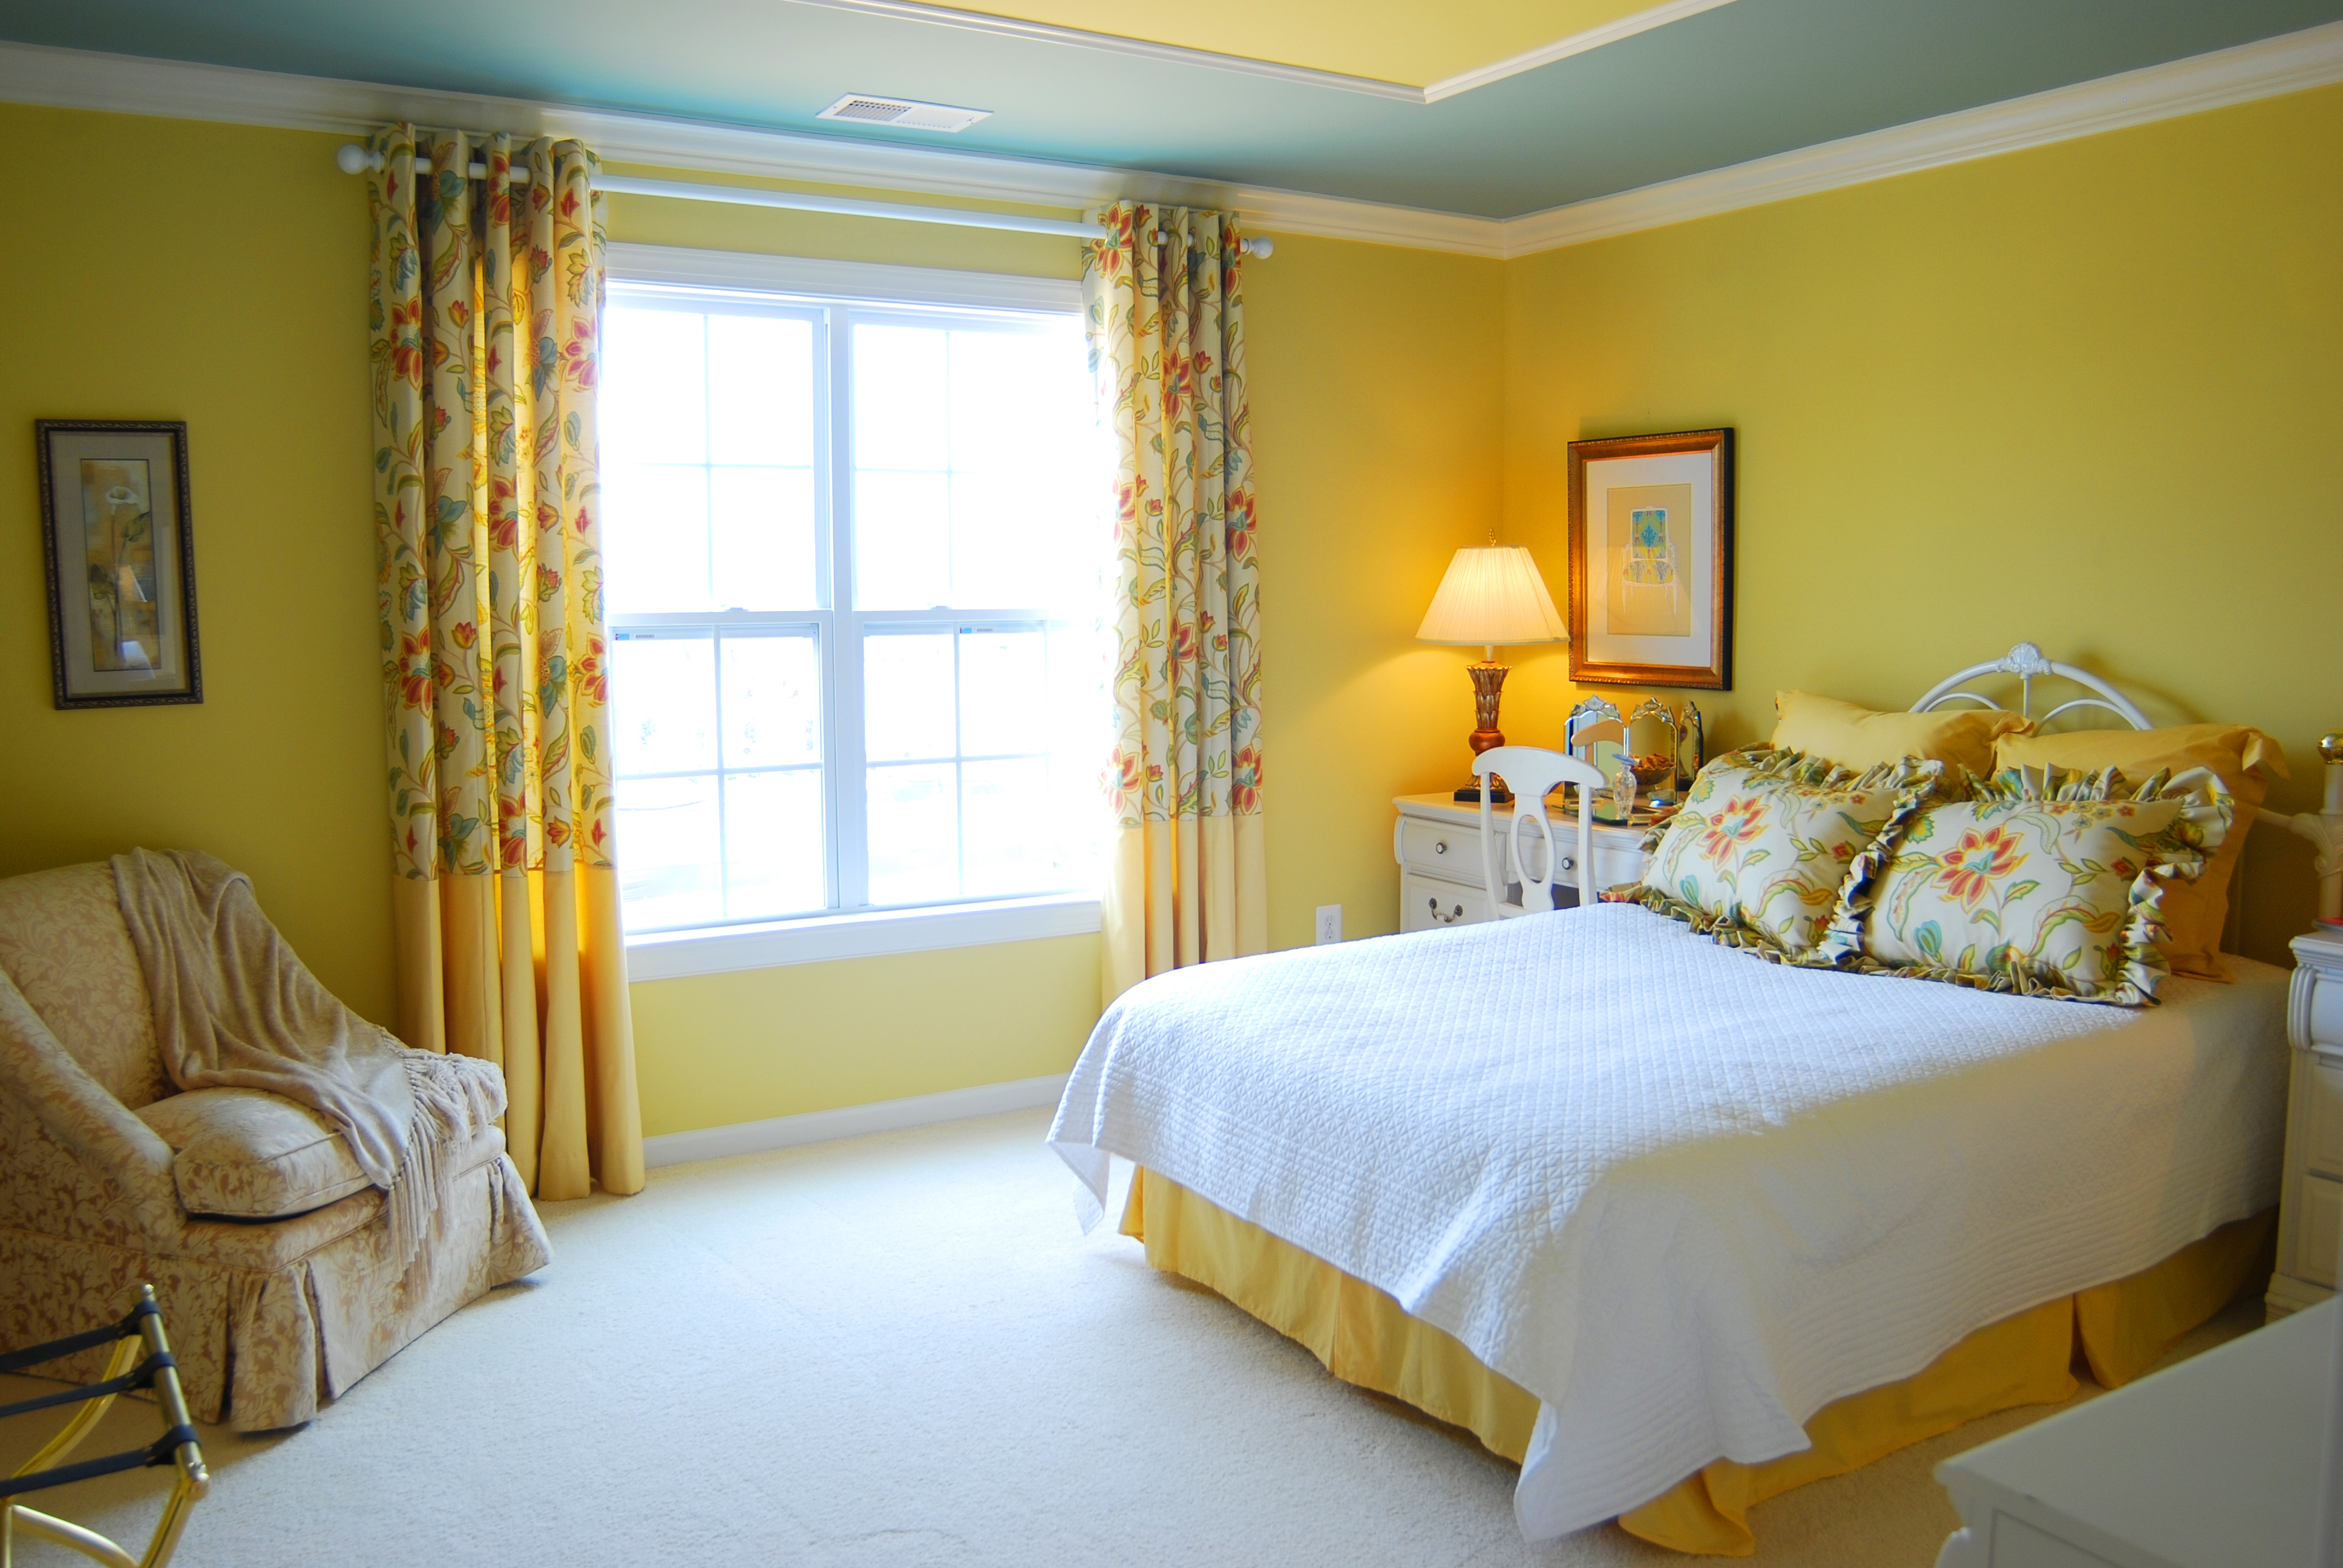 For Many Top Bedroom Colors Ideas You Shall Visit Different Websites Offering Free And Premium Your Color Decor